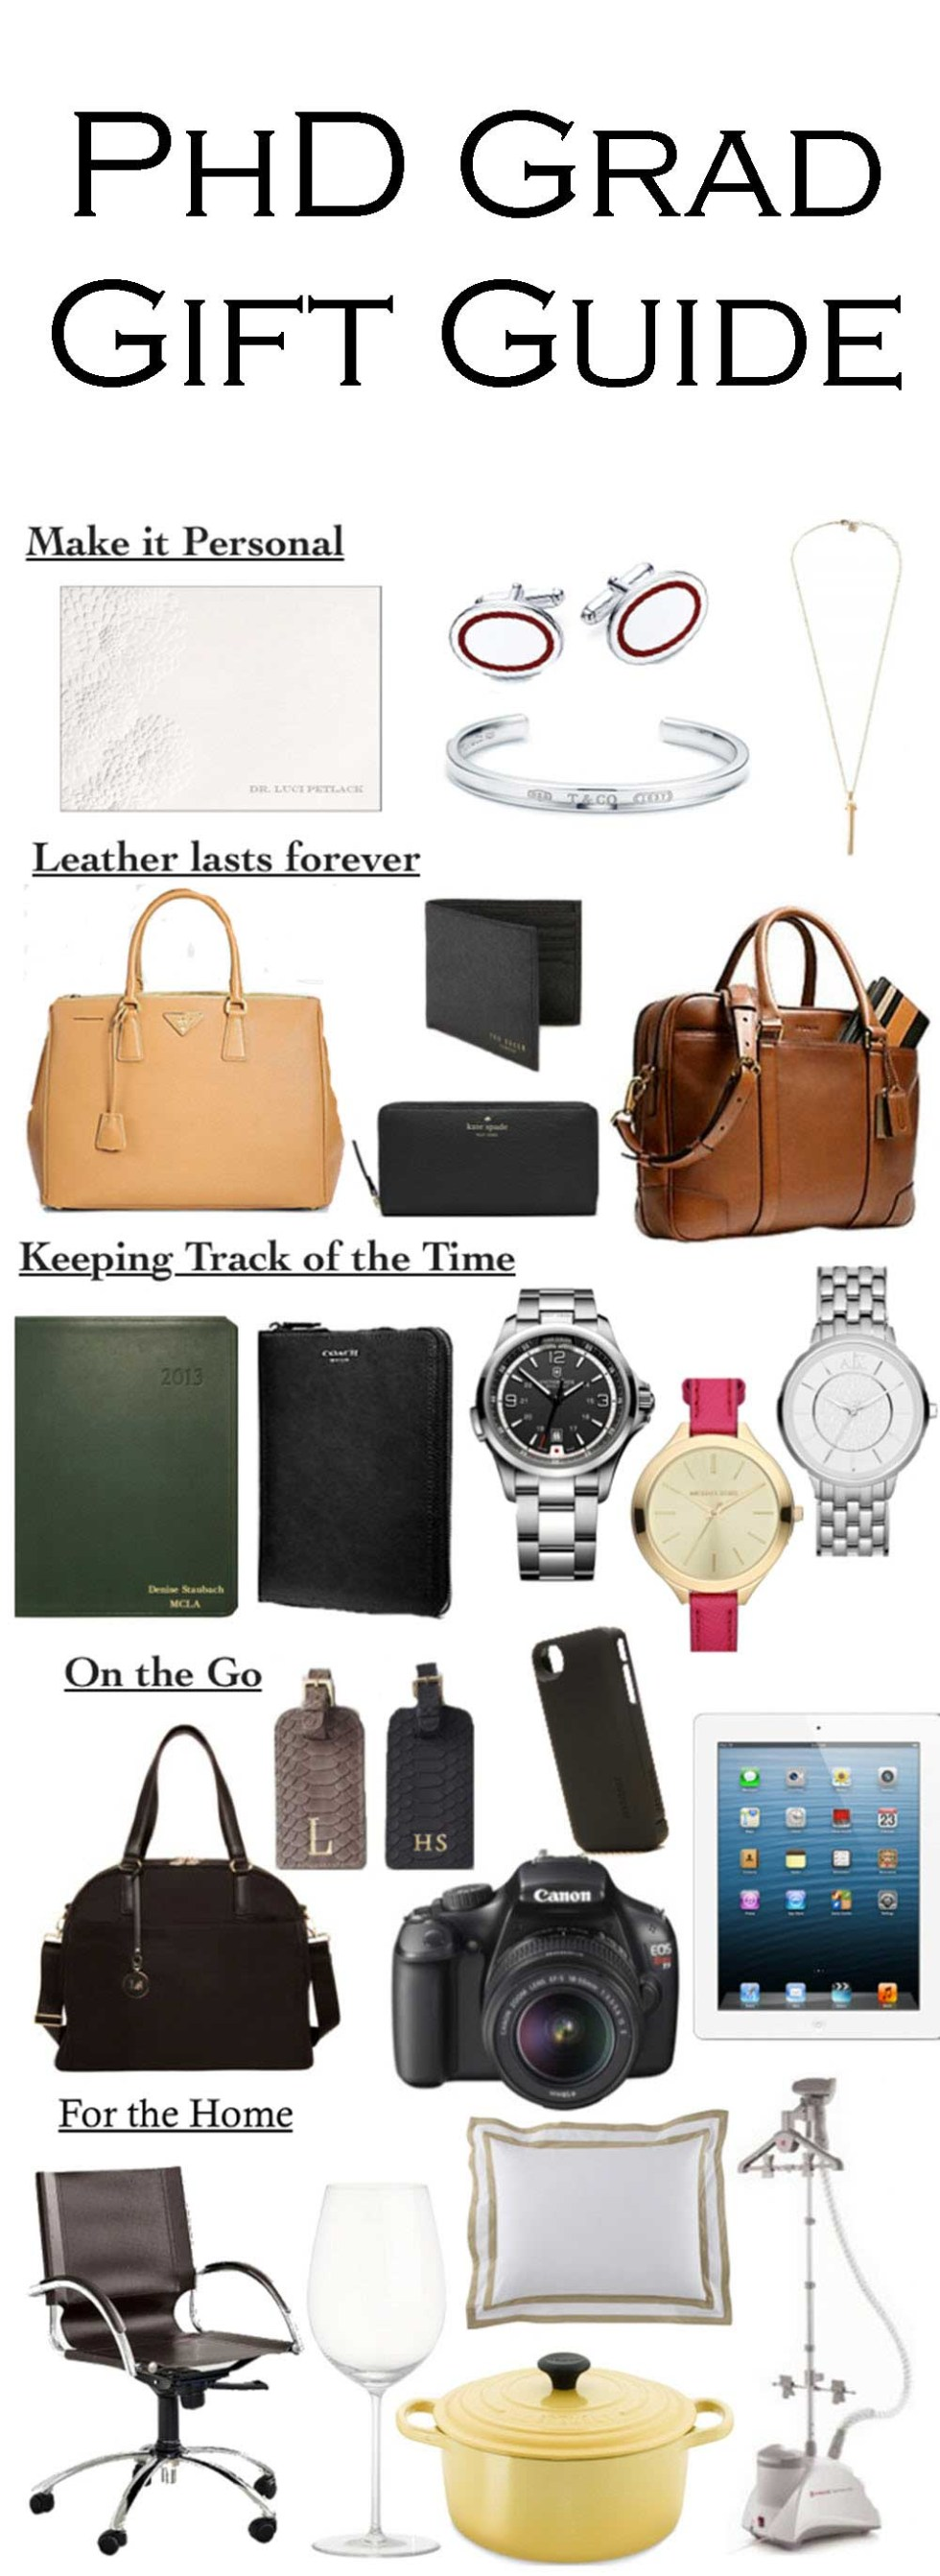 PhD Graduation Gifts - What to Get PhD Graduate #phd #graduation #doctorate #phdgraduation